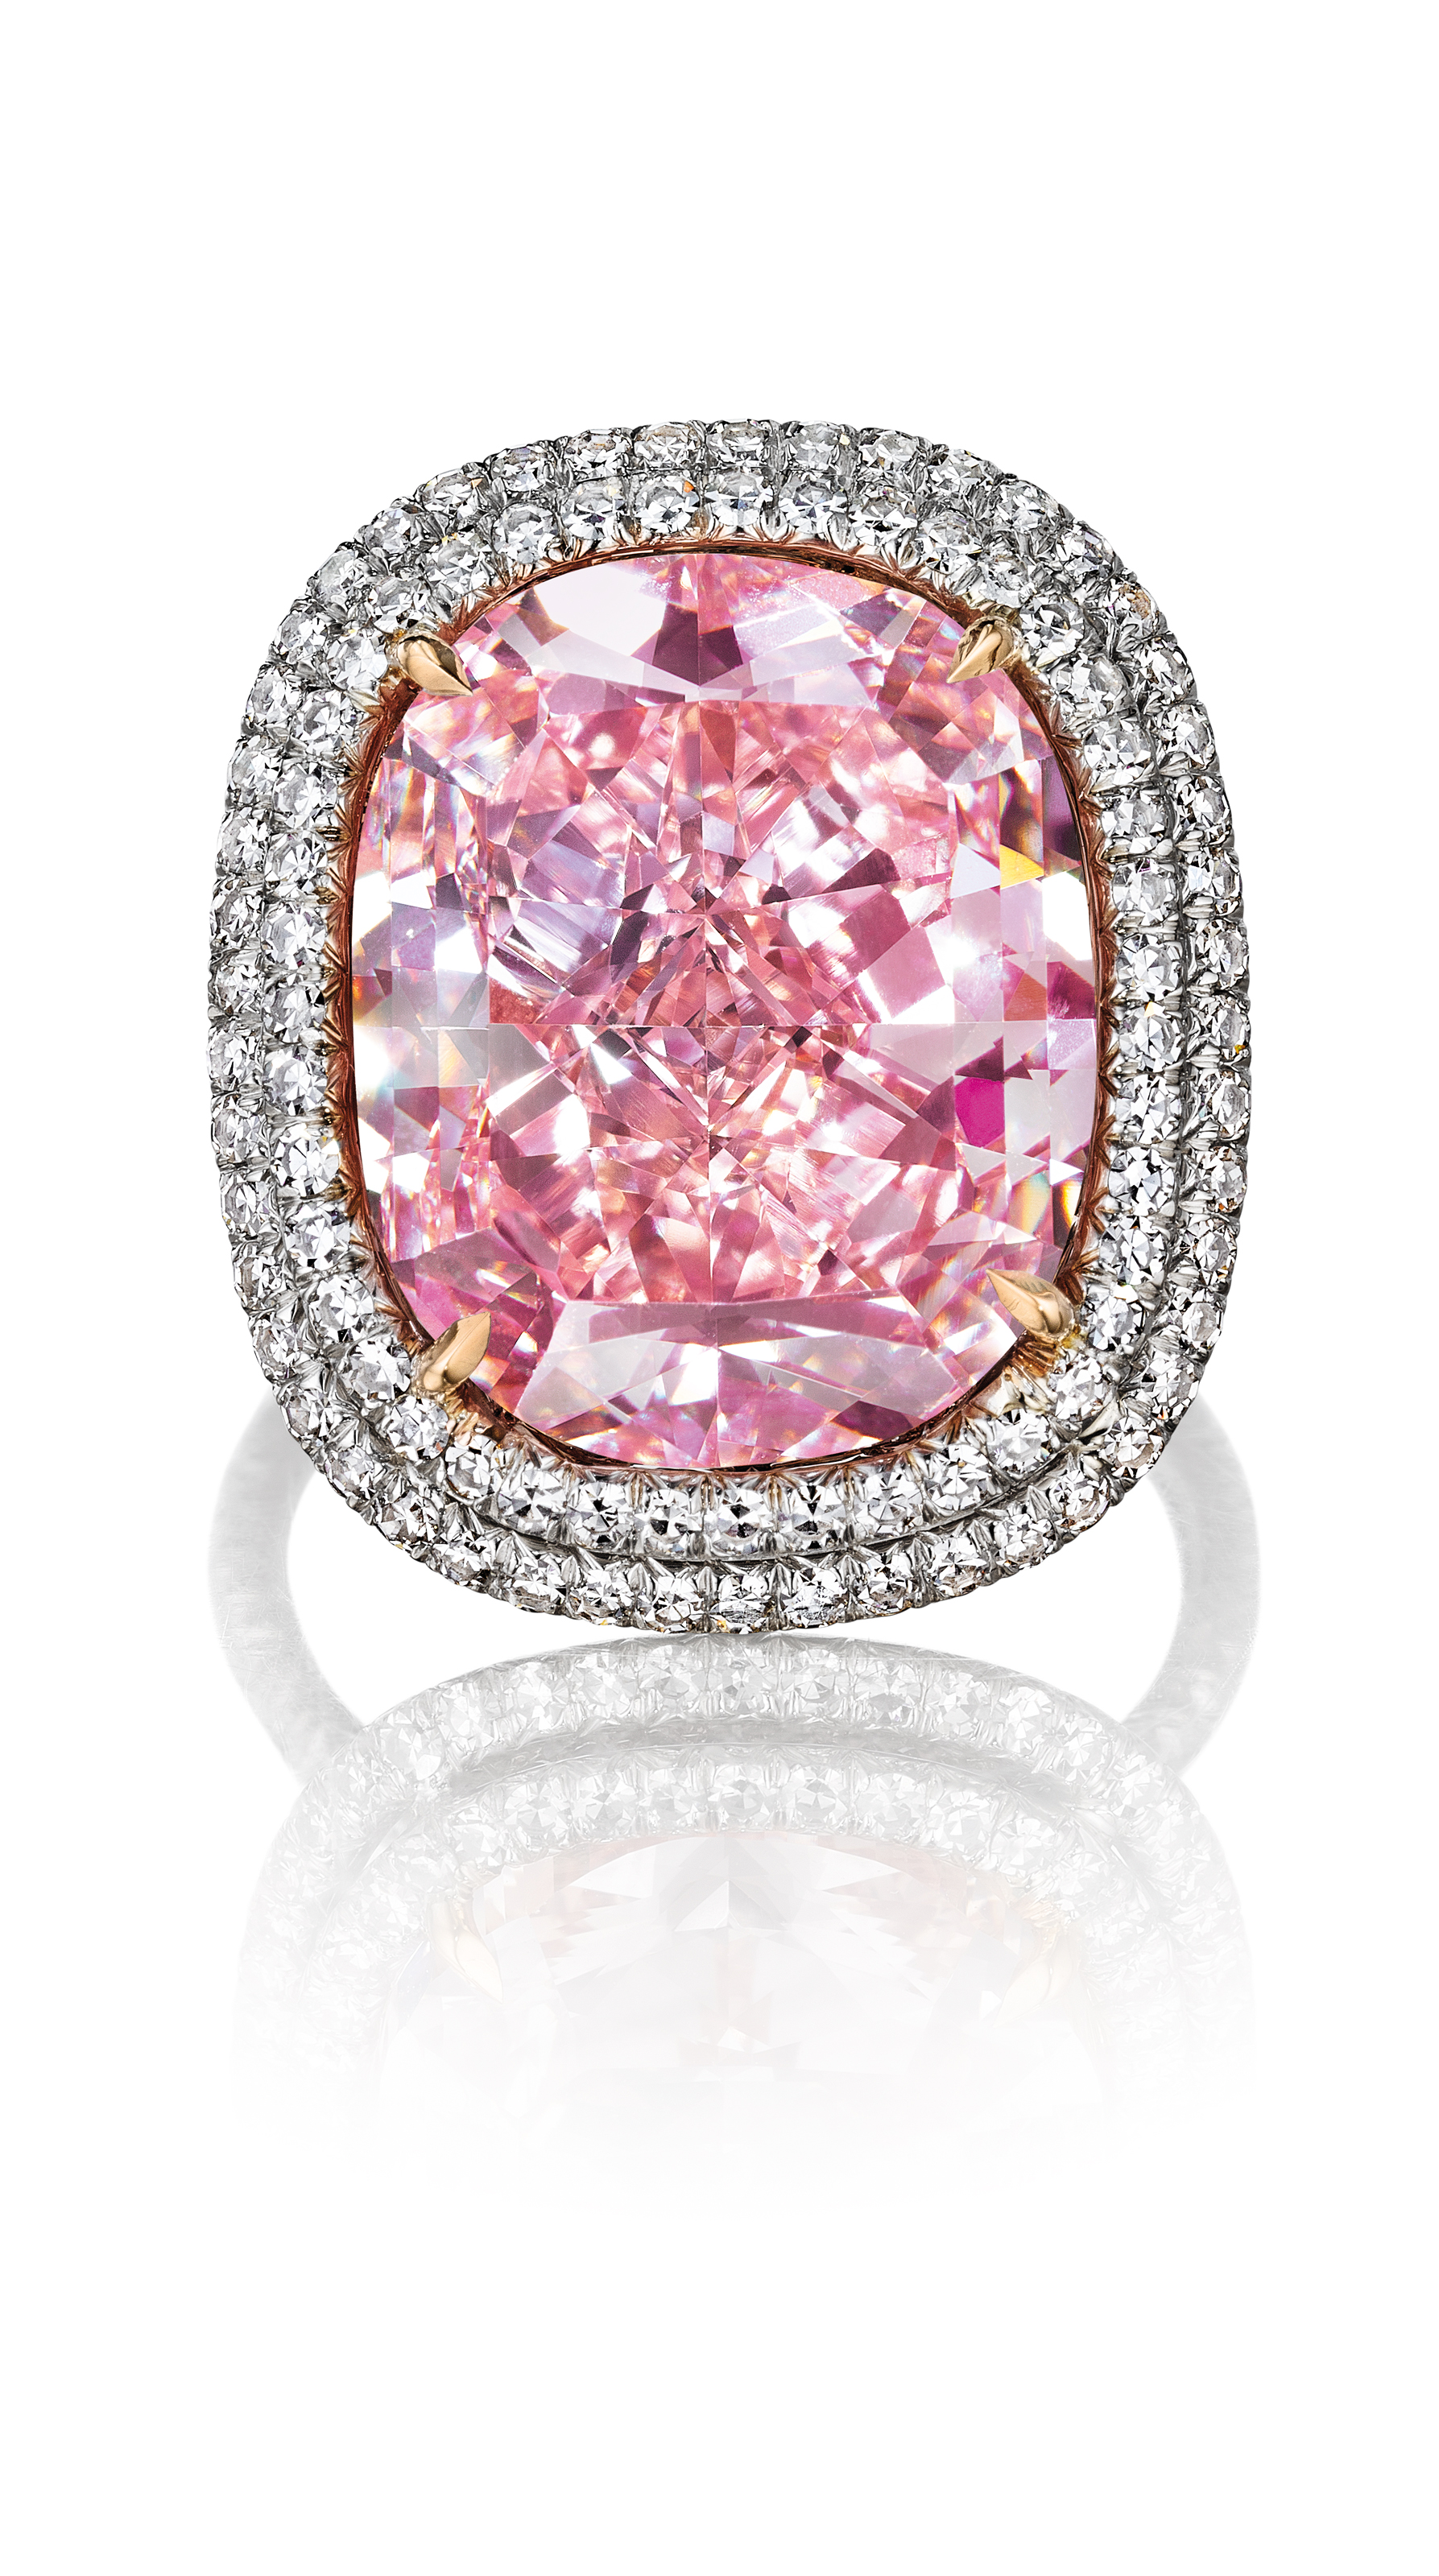 top hong s ruby sotheby kong auction bhagats engagement at emerges bhagat lot indian jeweller as sothebys rings ring